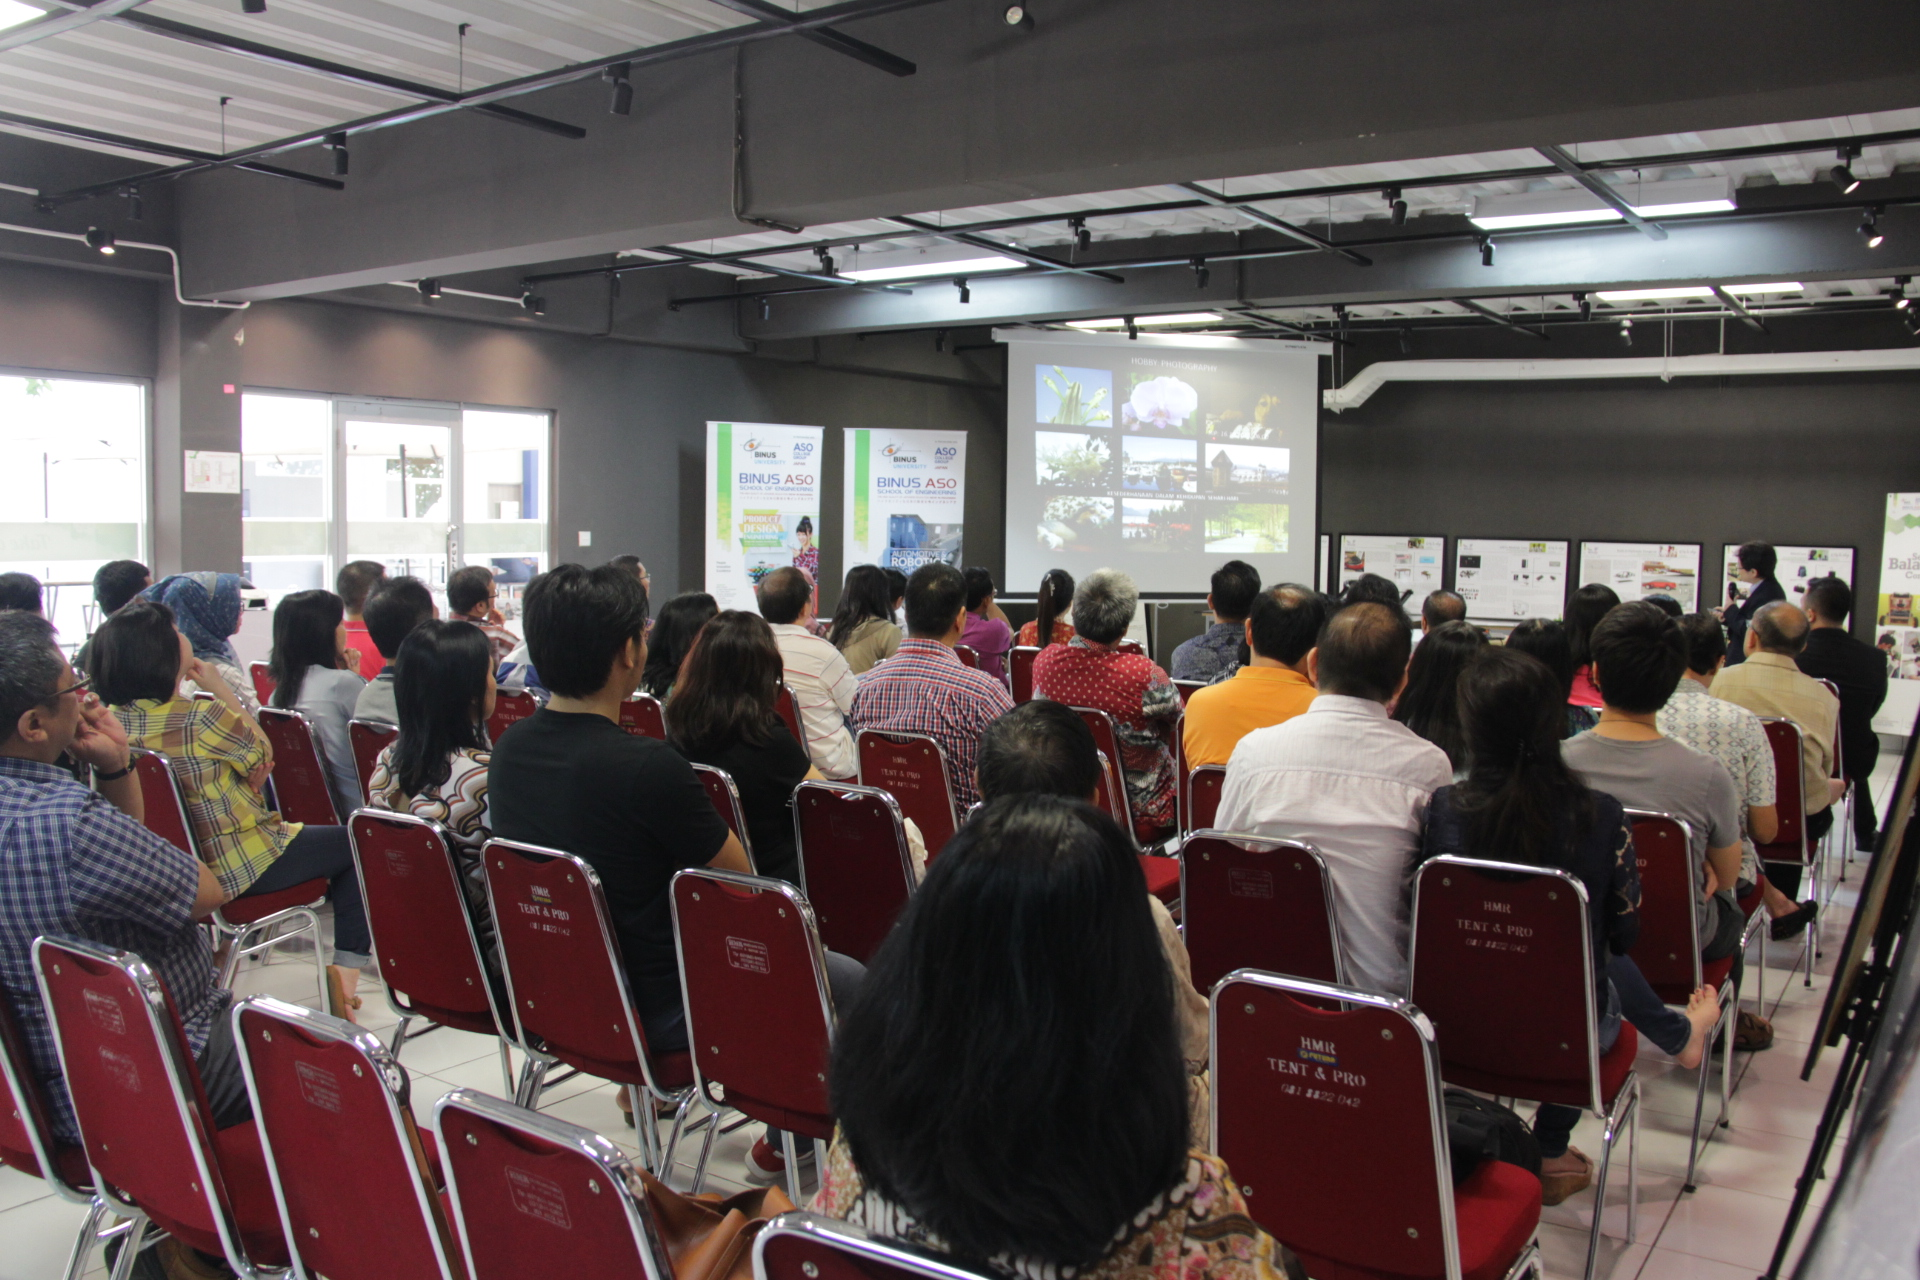 Parent s Update BINUS ASO School of Engineering BINUS